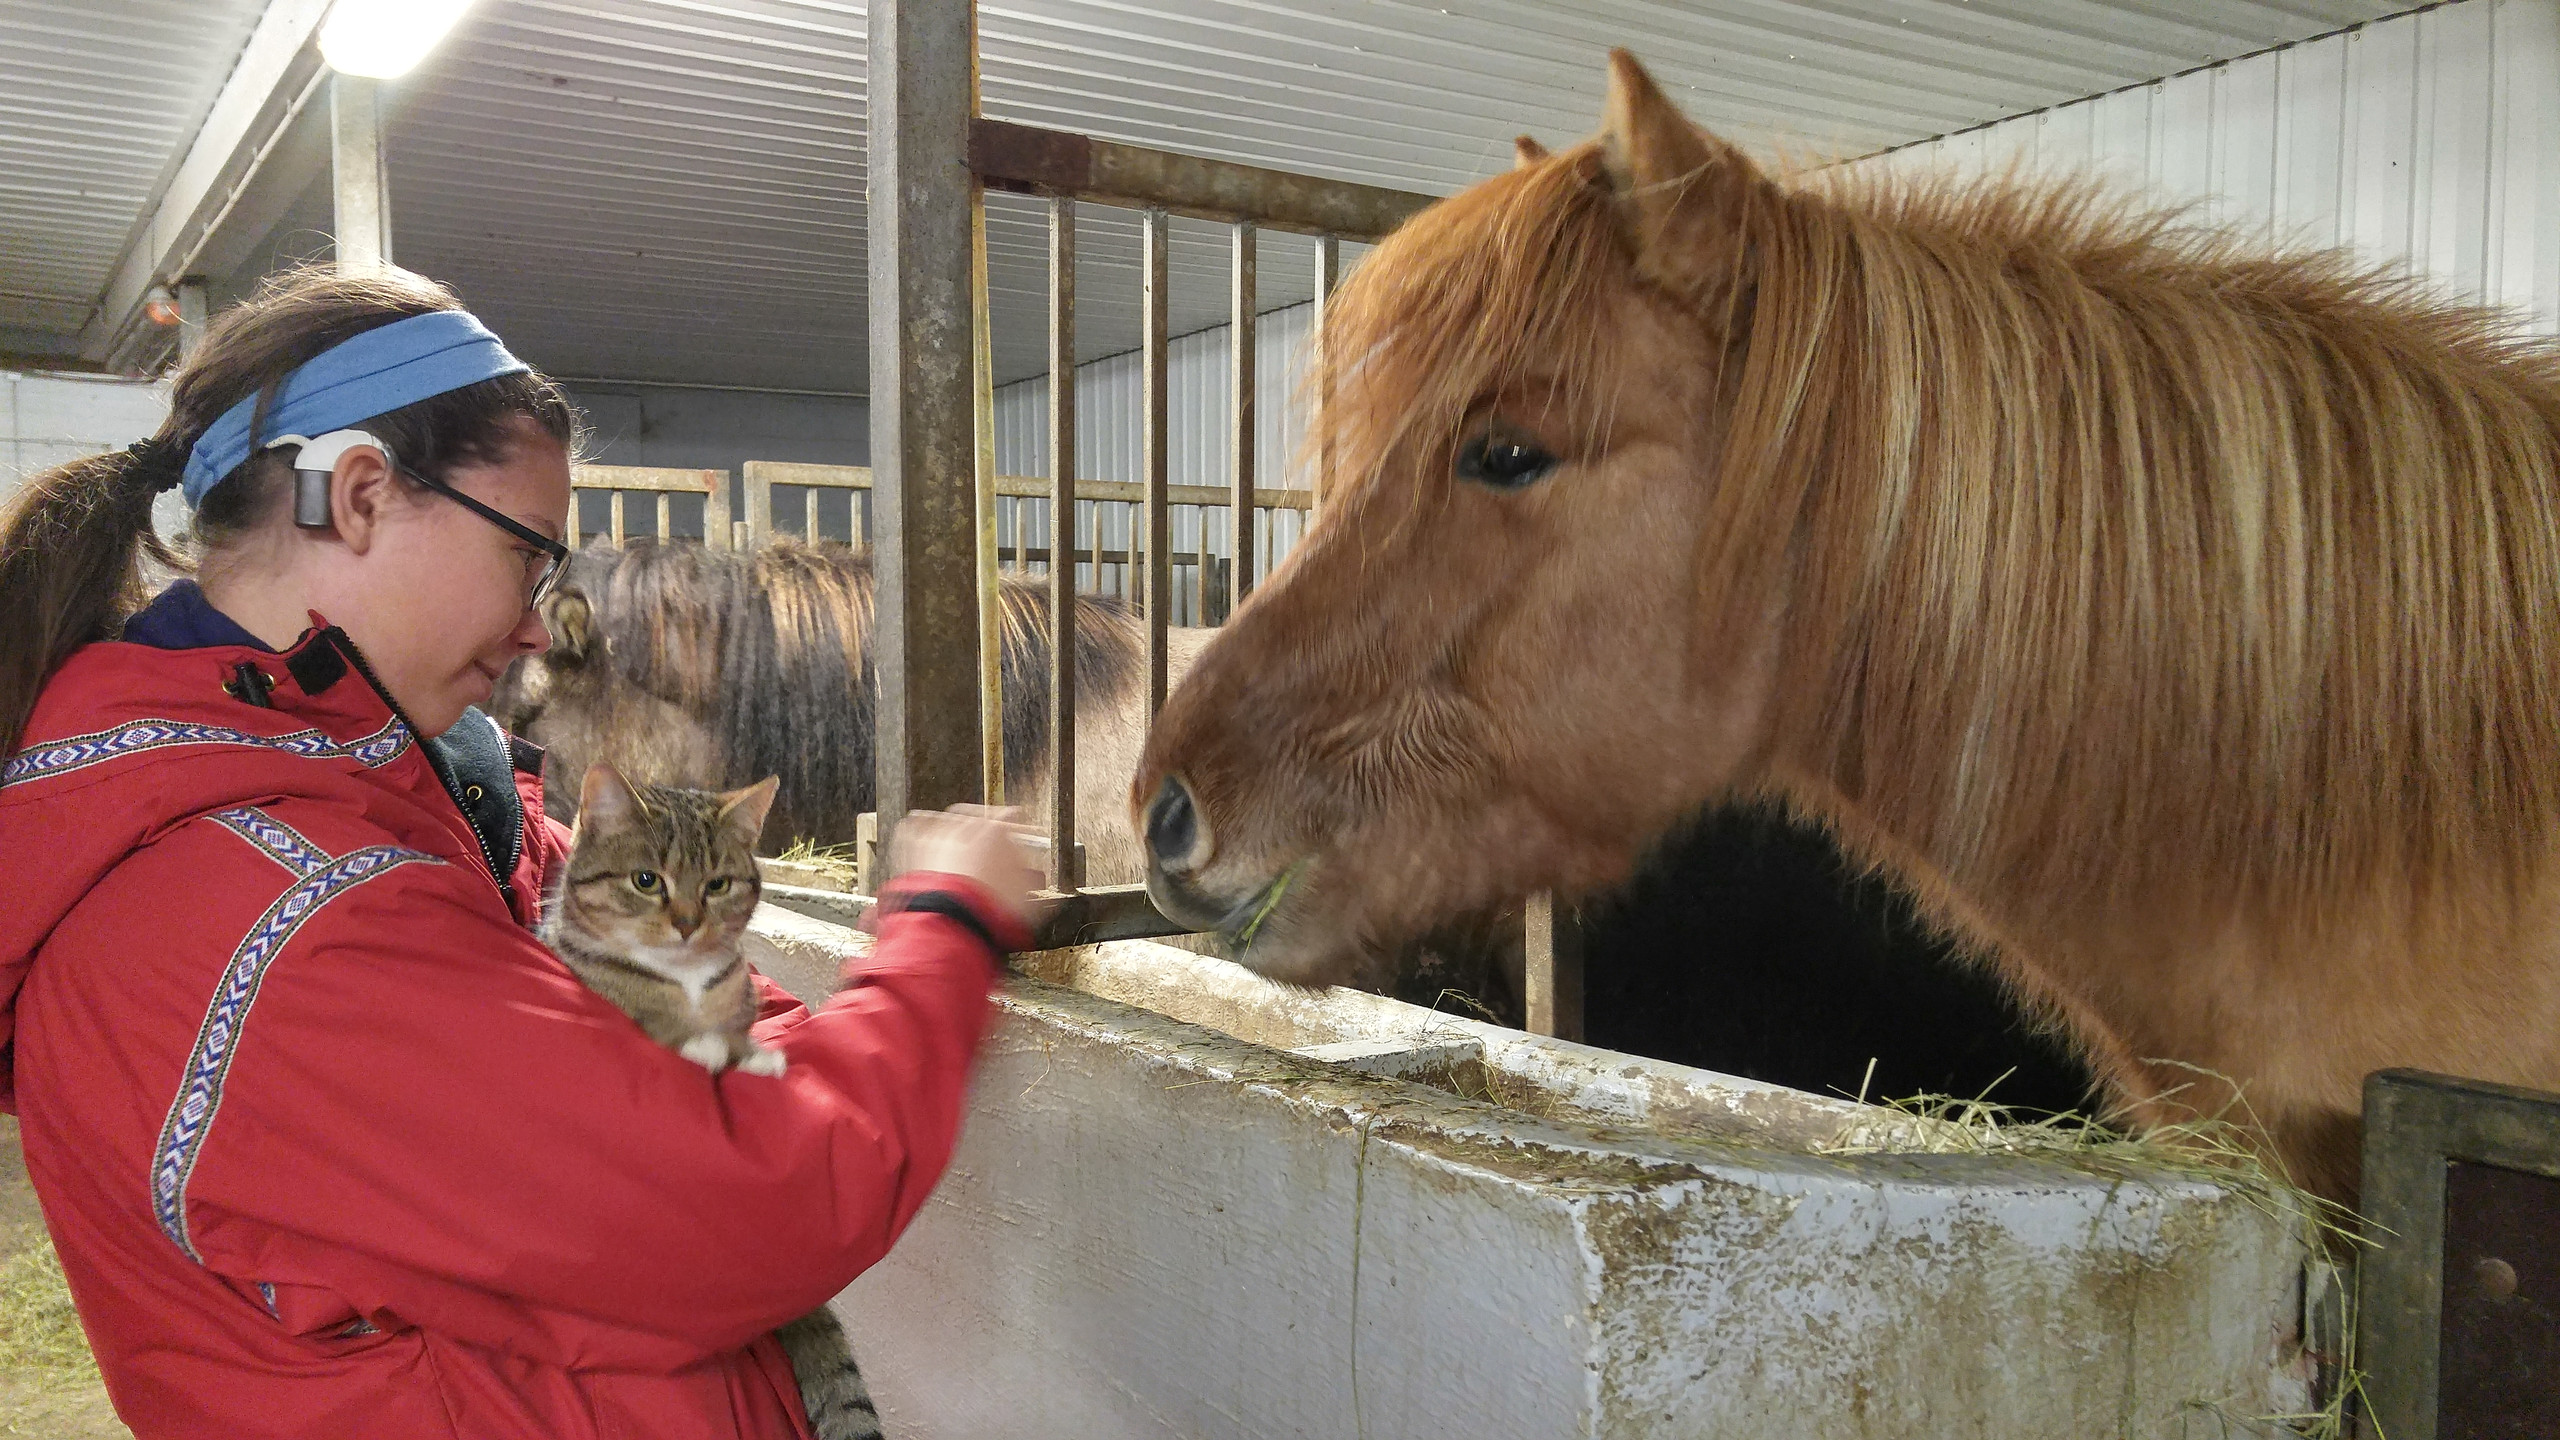 On the farm with hearing loss